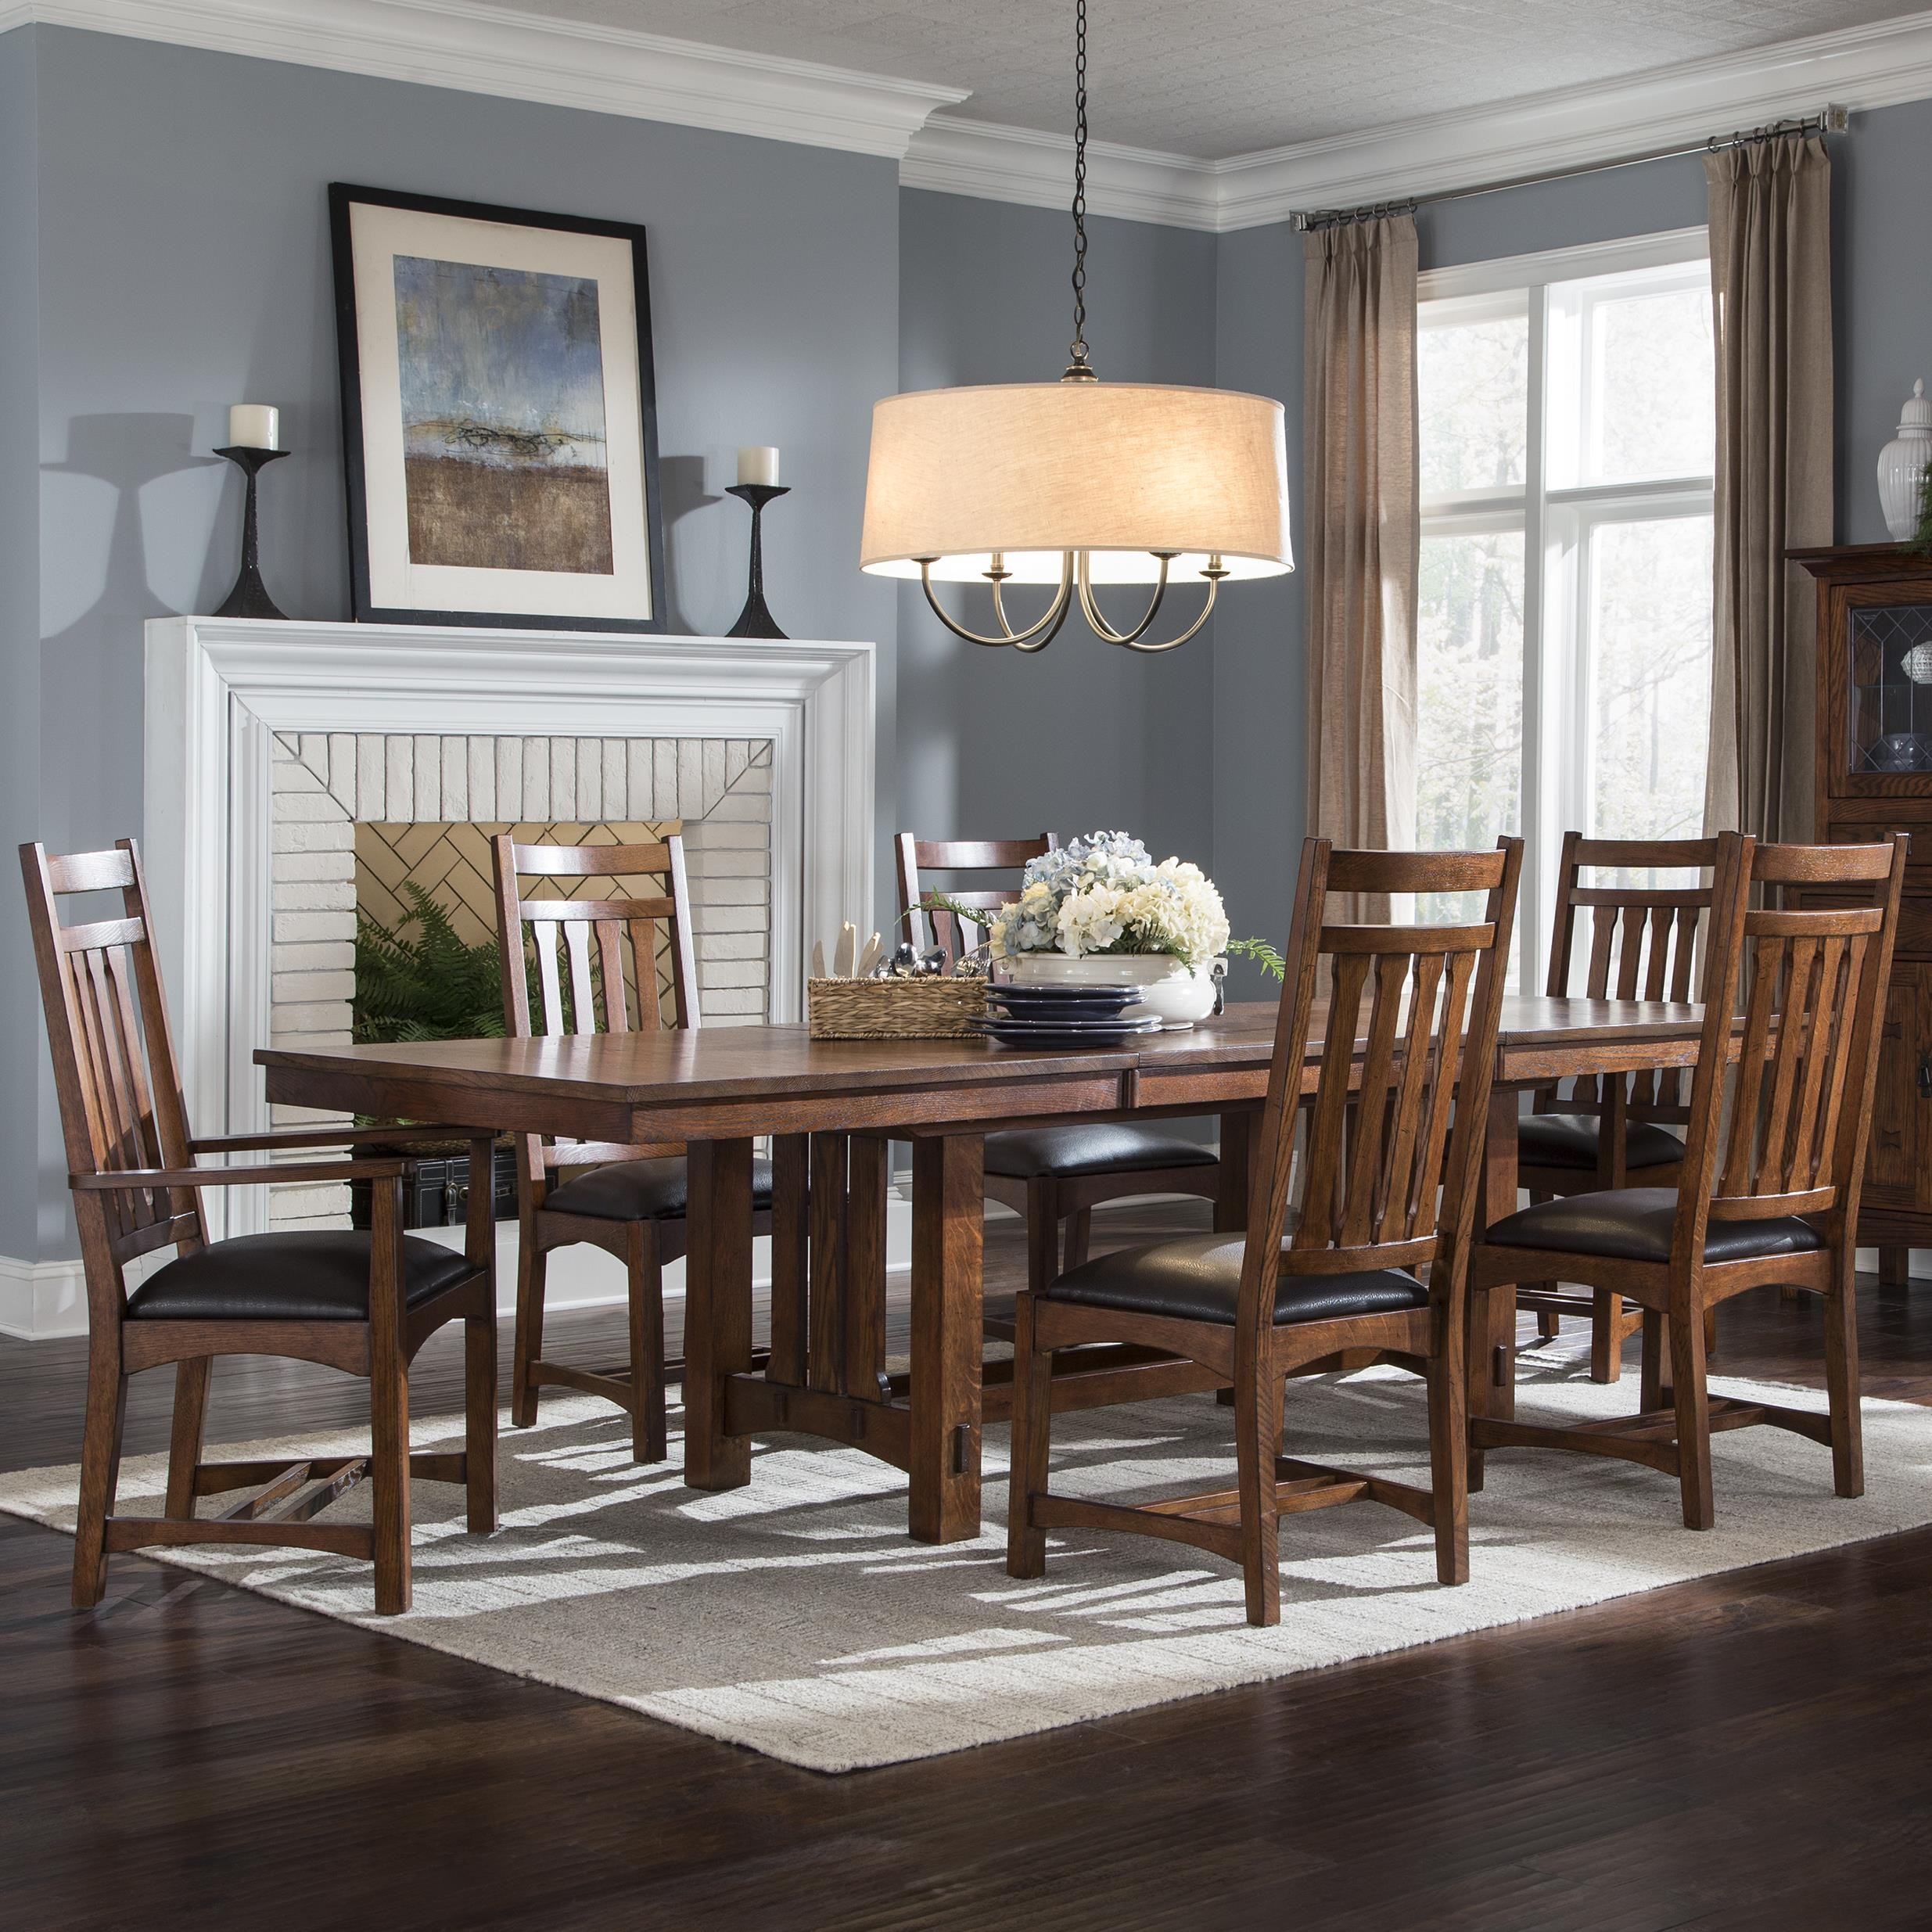 Intercon Oak Park 7 Piece Dining Set With Slat Back Chairs